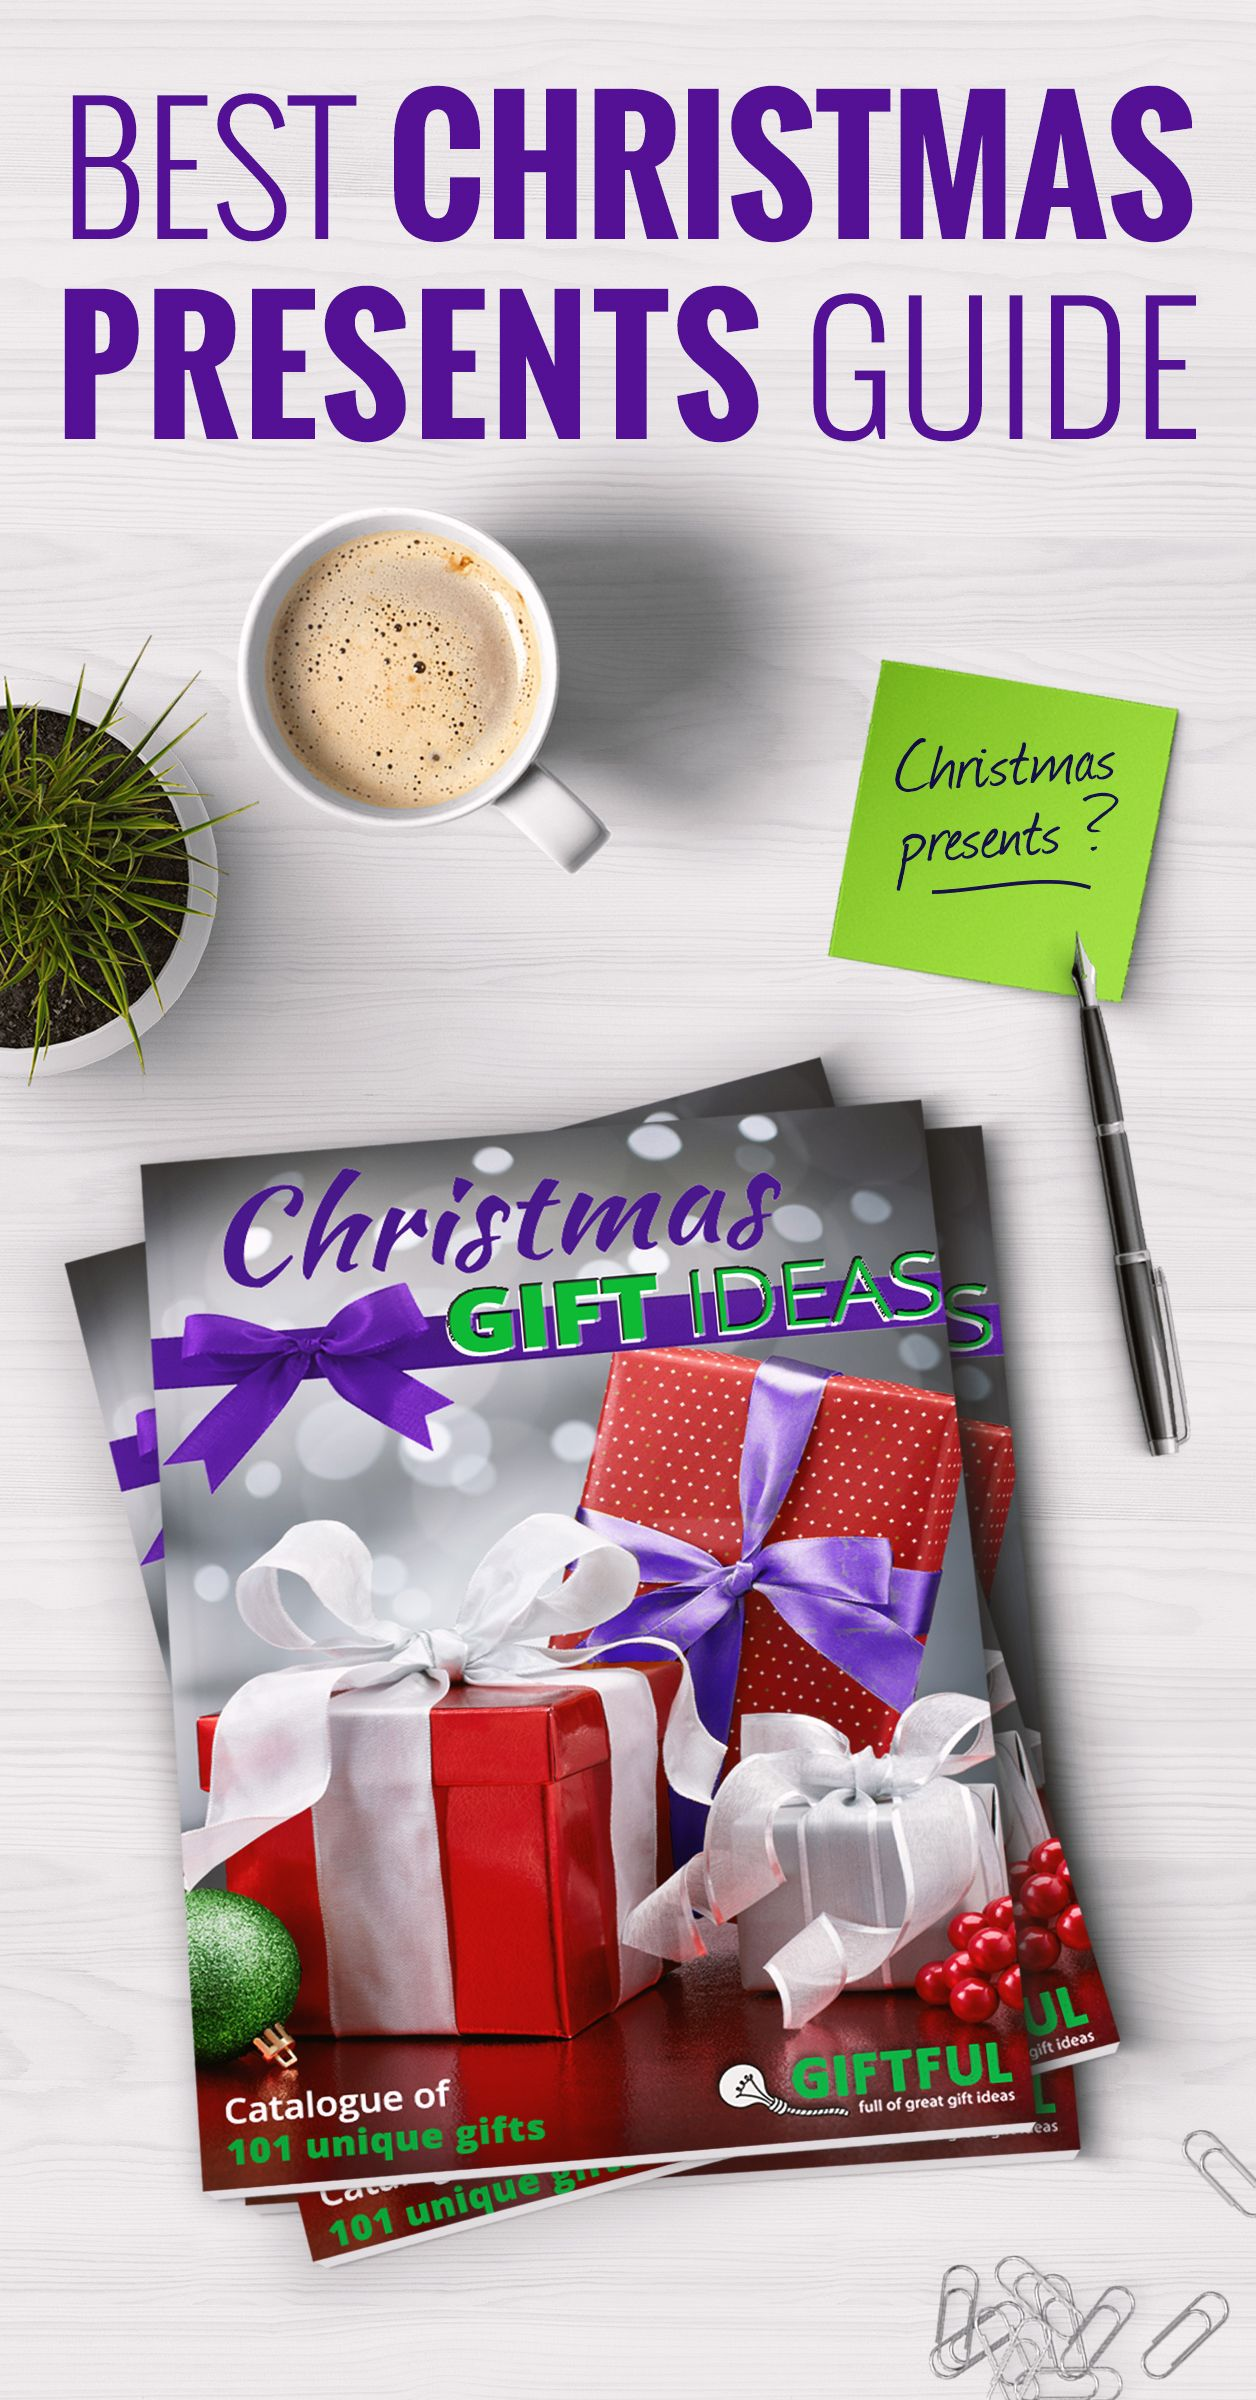 101 Christmas Gift Ideas http://ideas.giftful.co.uk/christmas-gift-ideas/  With our gift ideas catalogue, you'll no longer need to worry about finding  ...